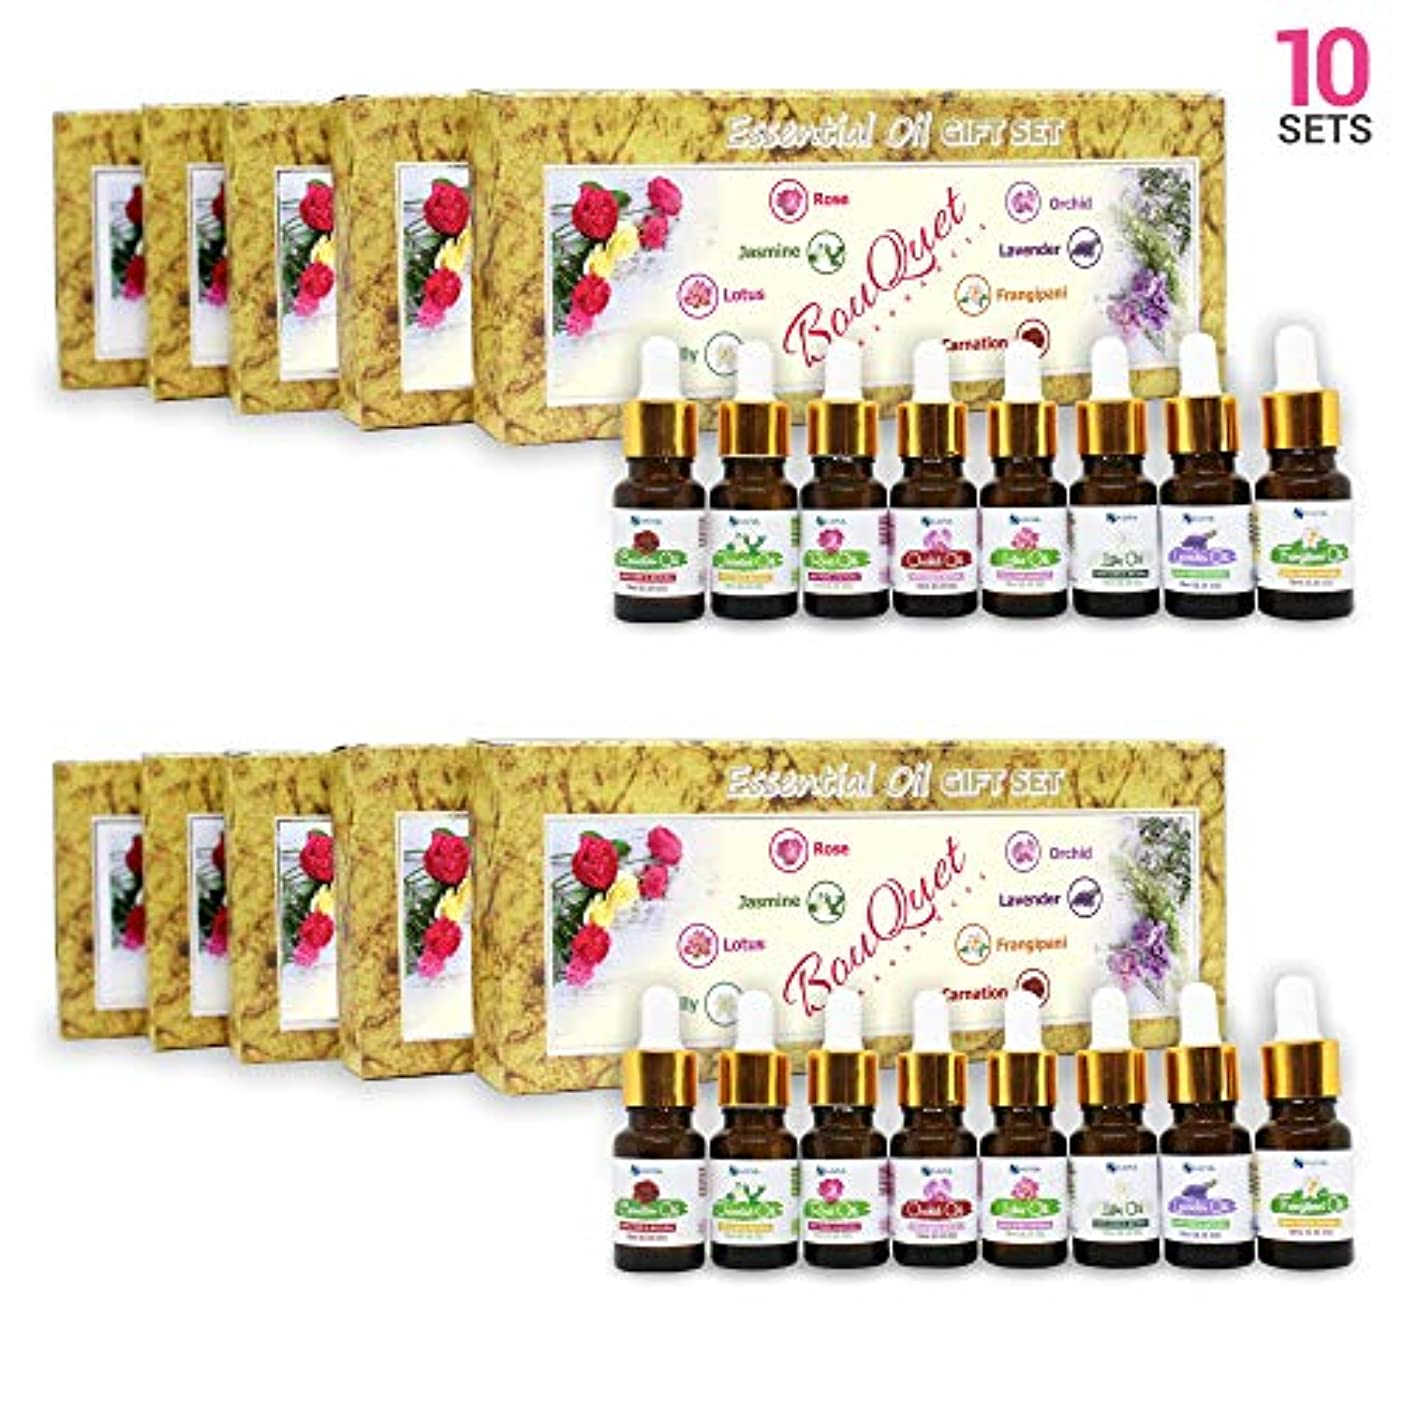 Aromatherapy Fragrance Oils (Set of 10) - 100% Natural Therapeutic Essential Oils, 10ml each (Rose, Jasmine, Lotus...